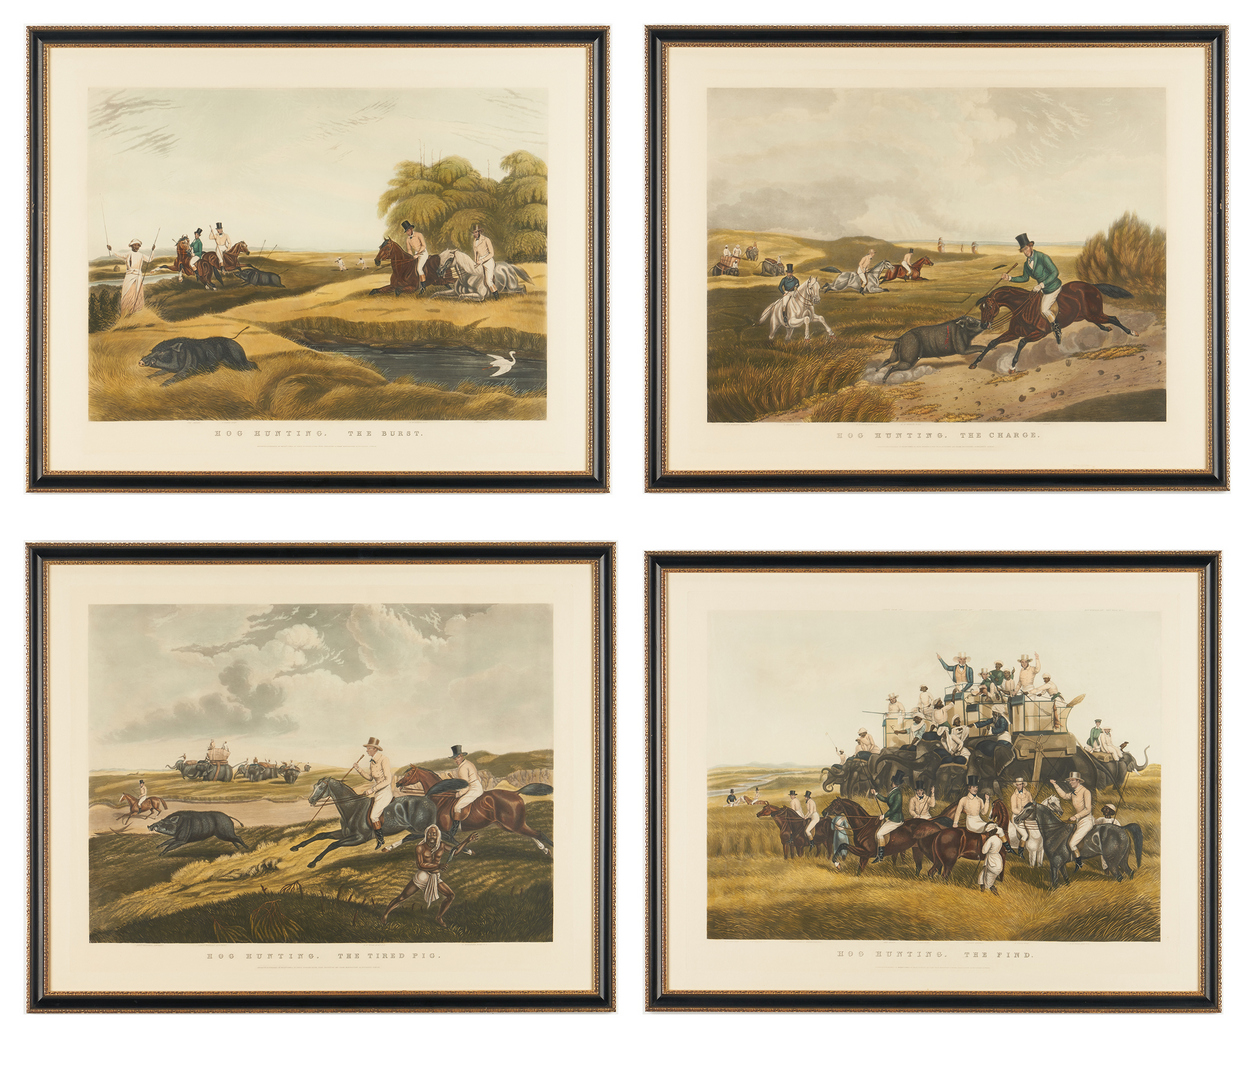 Lot 121: 4 Hog Hunting Prints after Capt. John Platt